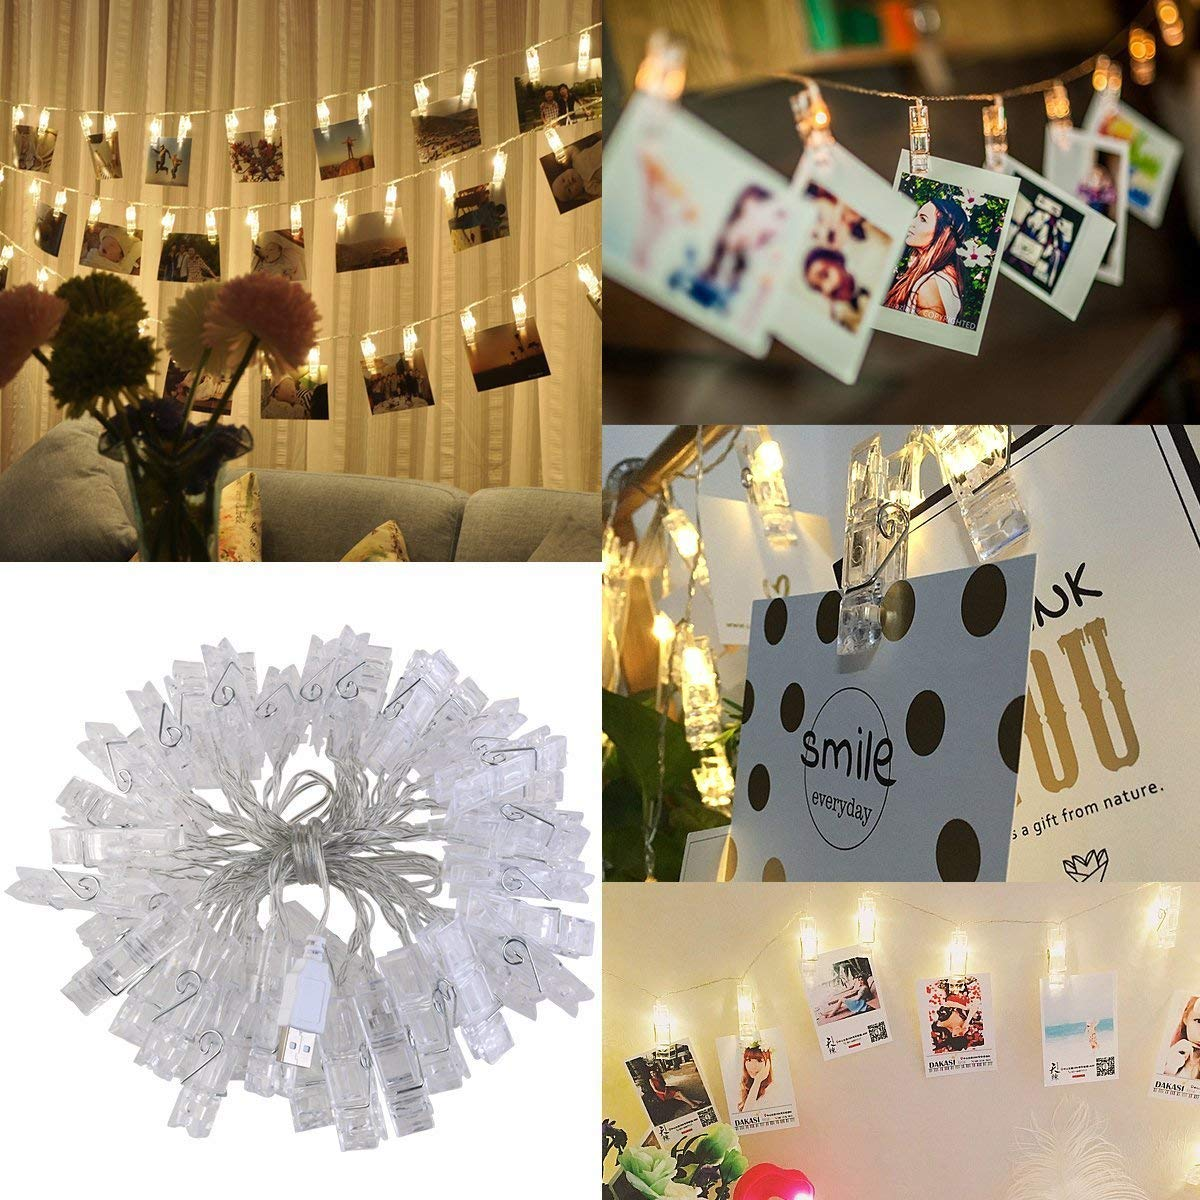 5M LED Photo Clip String Lights(Warm White) - 40 Photo Clip String Lights Indoor / Outdoor, Christmas Lights,for Hanging Photos Paintings Pictures Card and Memos